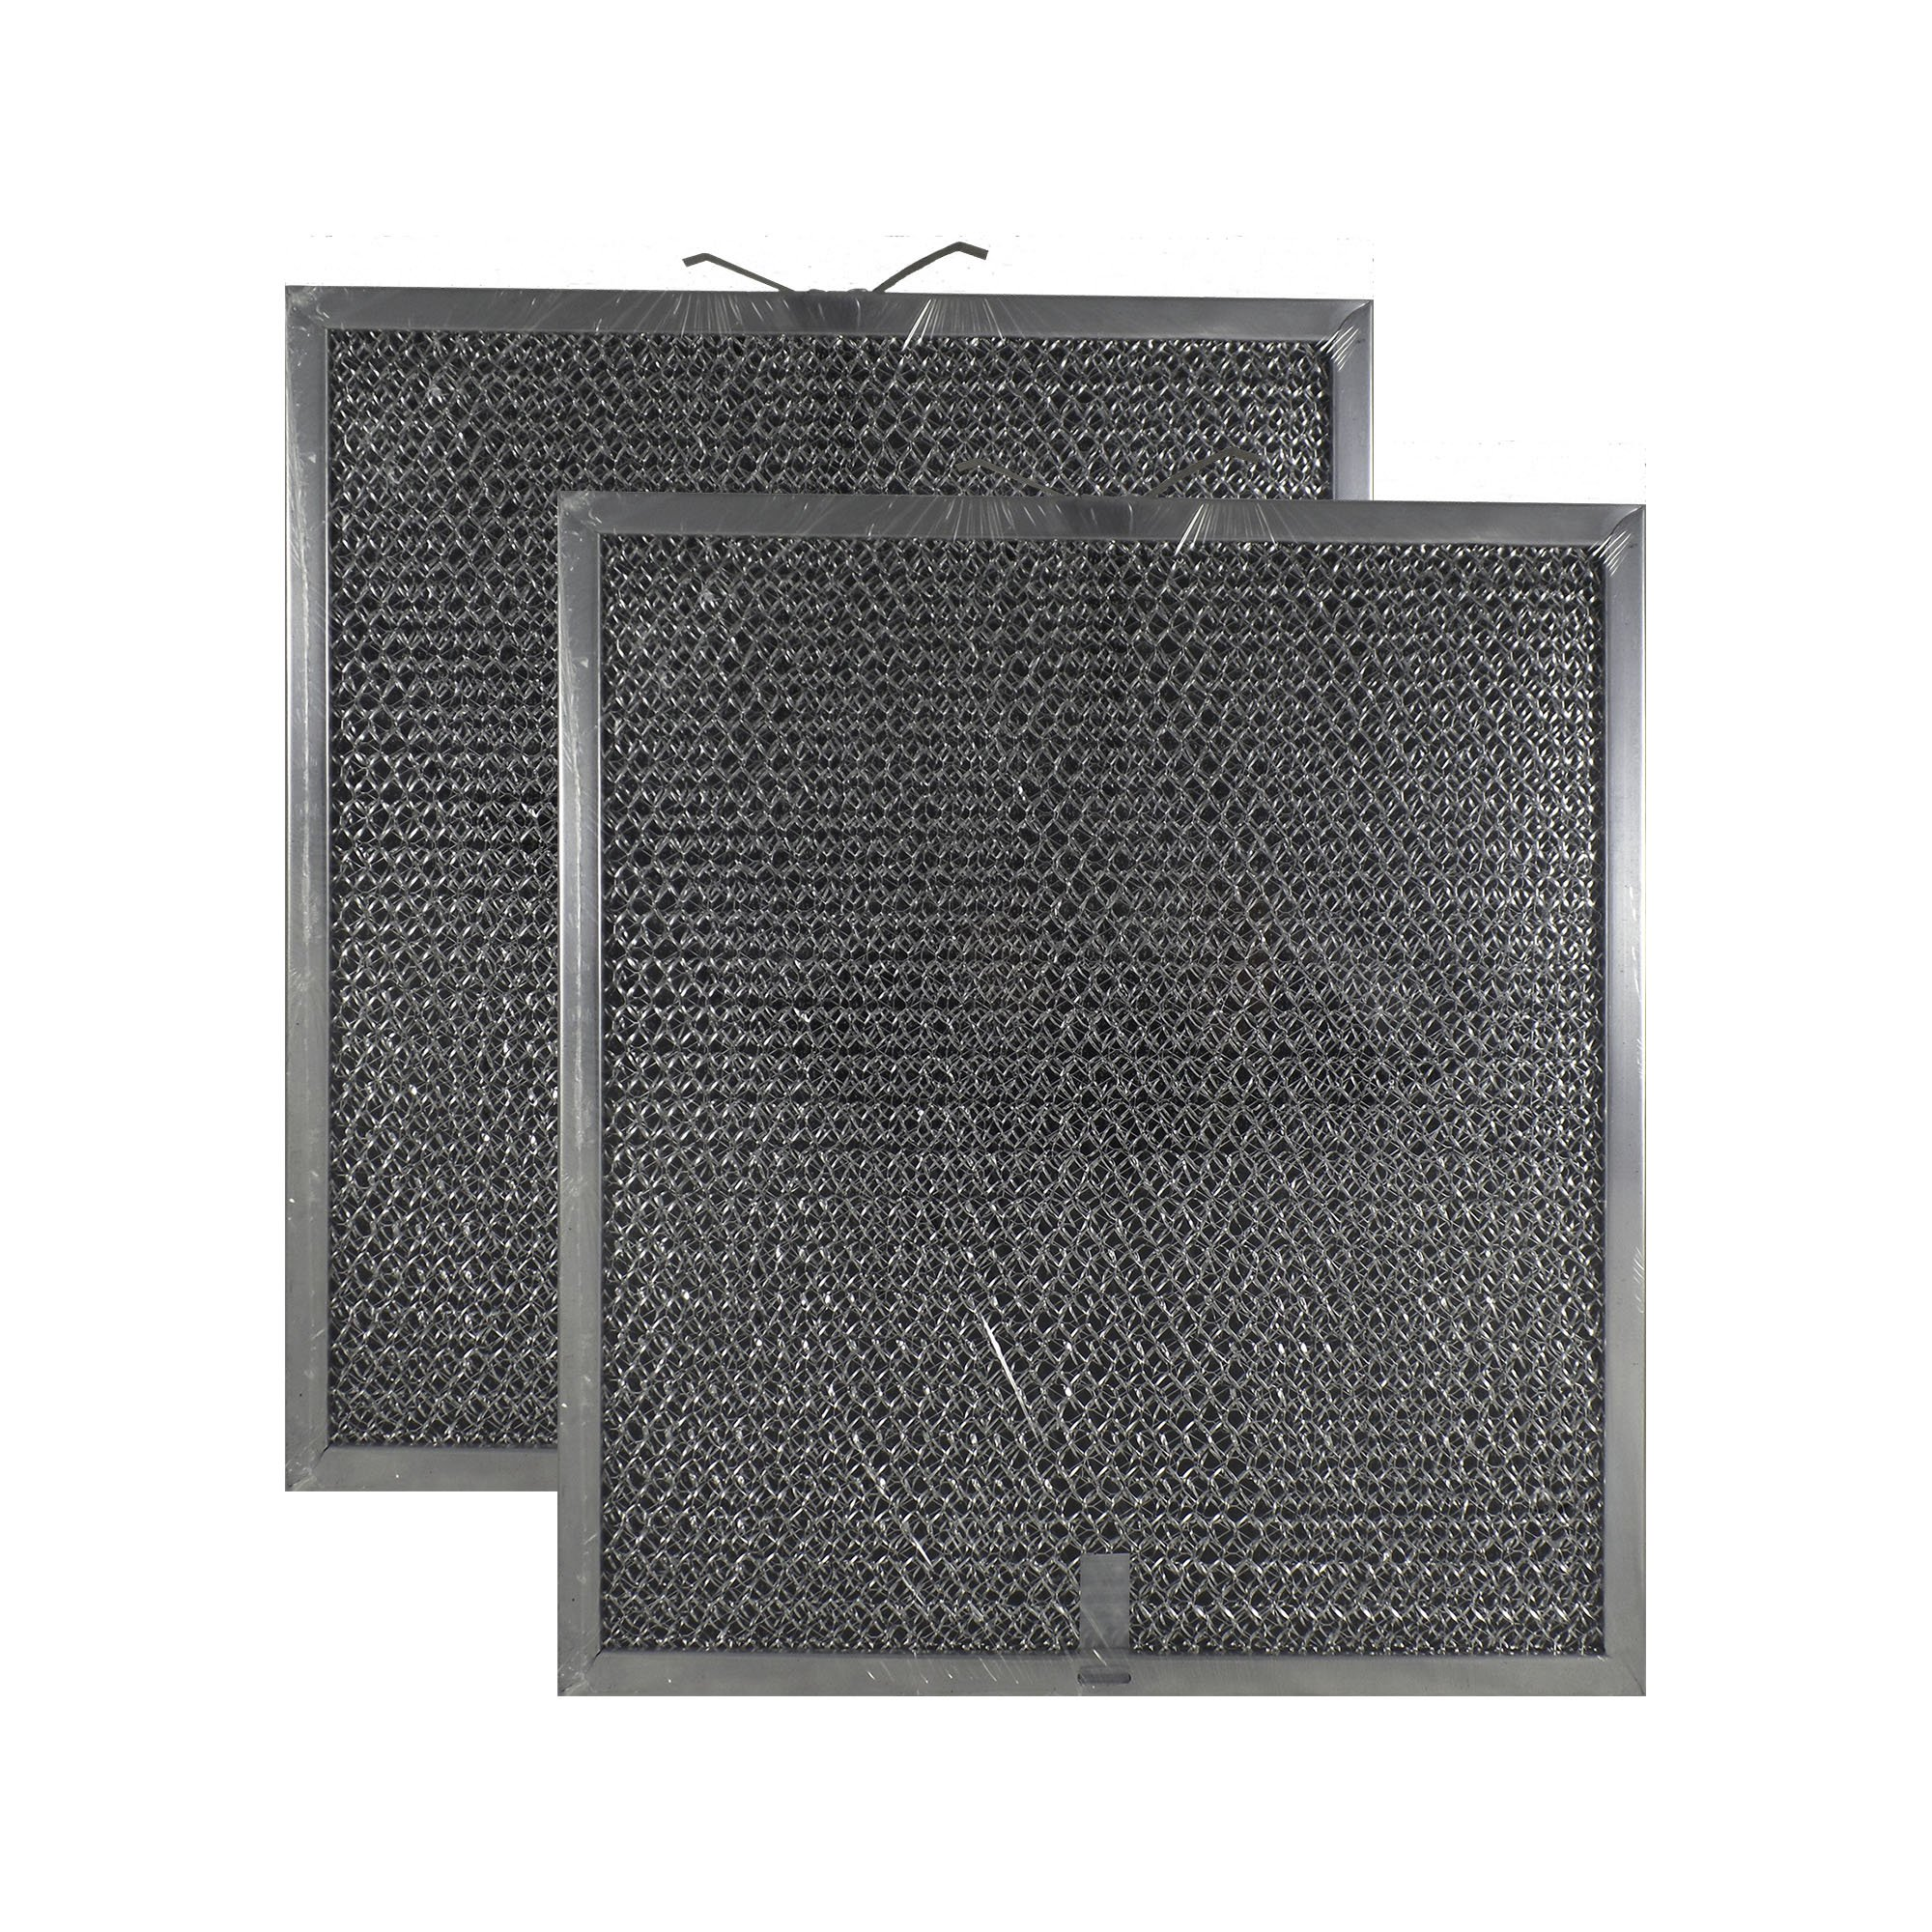 2 PACK Air Filter Factory Compatible Replacement For Broan Nutone QT2000 WA6500, 99010317, BPQTF, WA65F, S99010317 Compatible Aluminum Mesh Charcoal Combo Filter